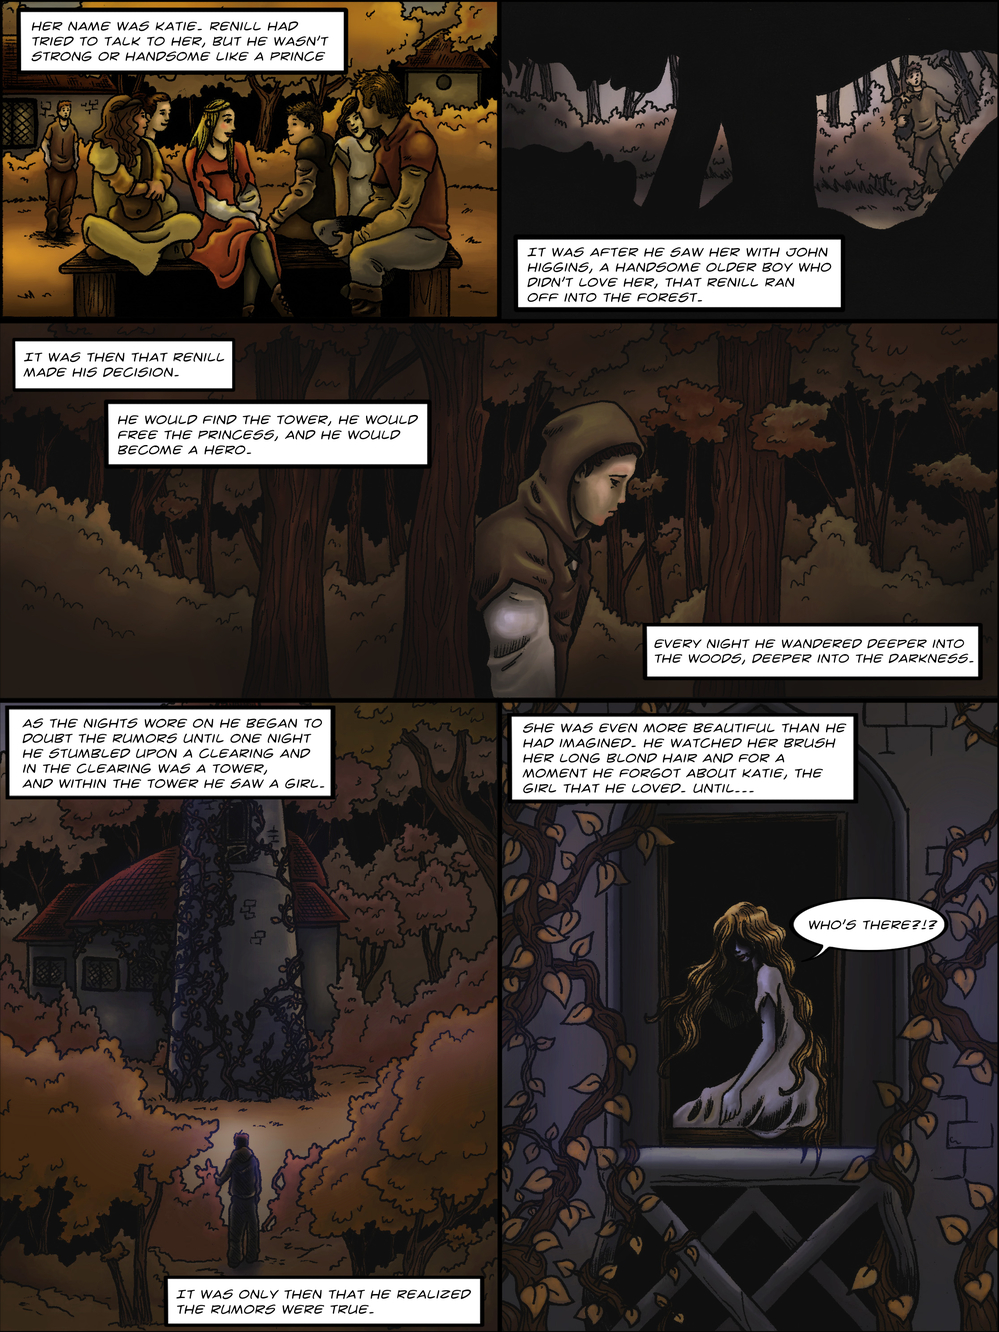 THE TOWER page 4 - story 1 in The Book of Lies